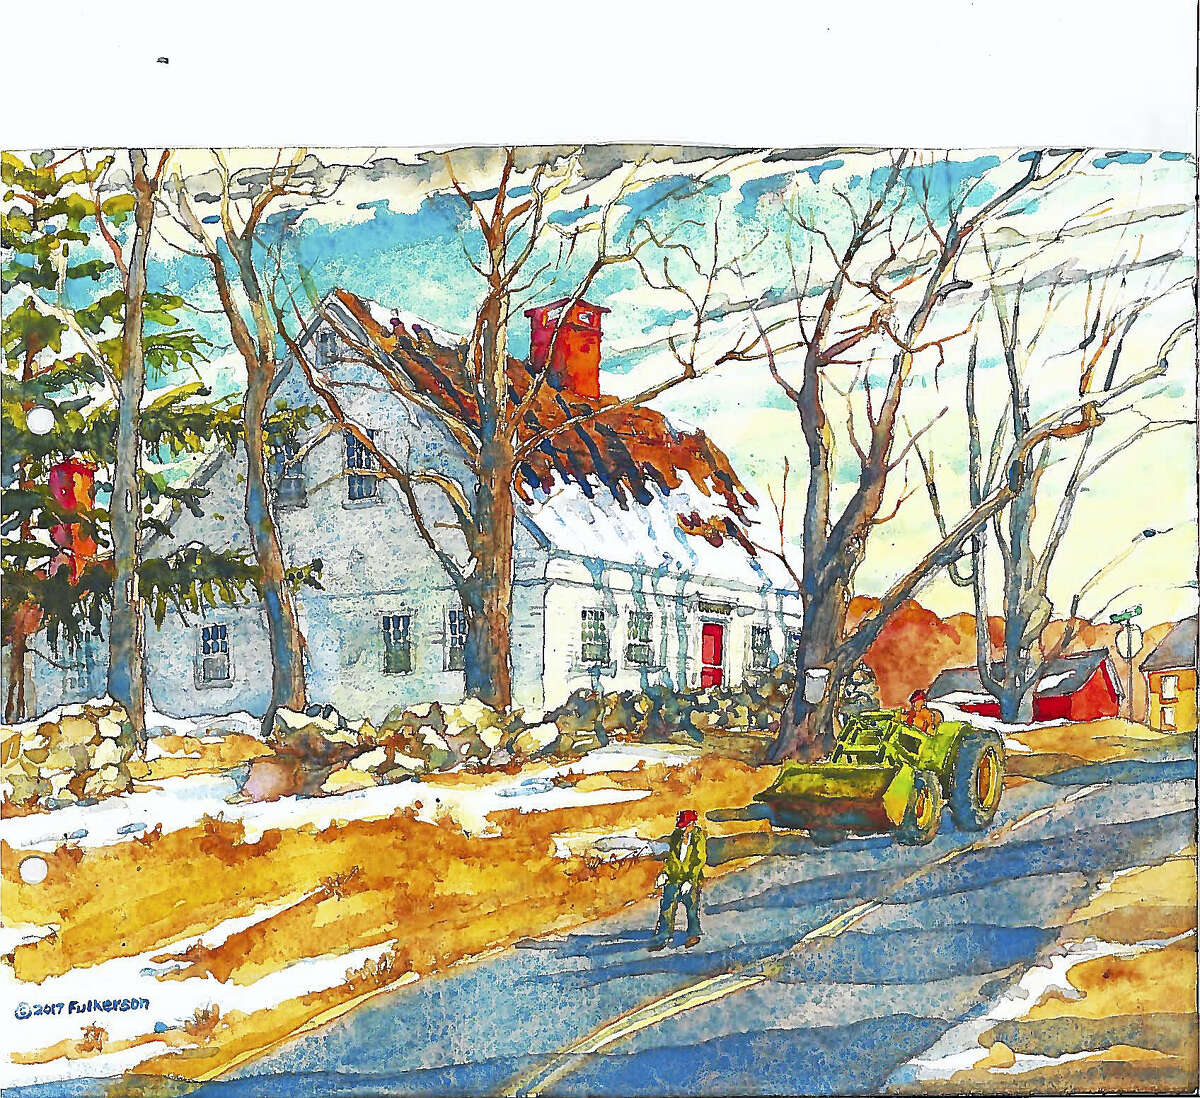 A watercolor by artist Chuck Fulkerson, who will lead a plein air painting class at Flanders Nature Center in Woodbury.